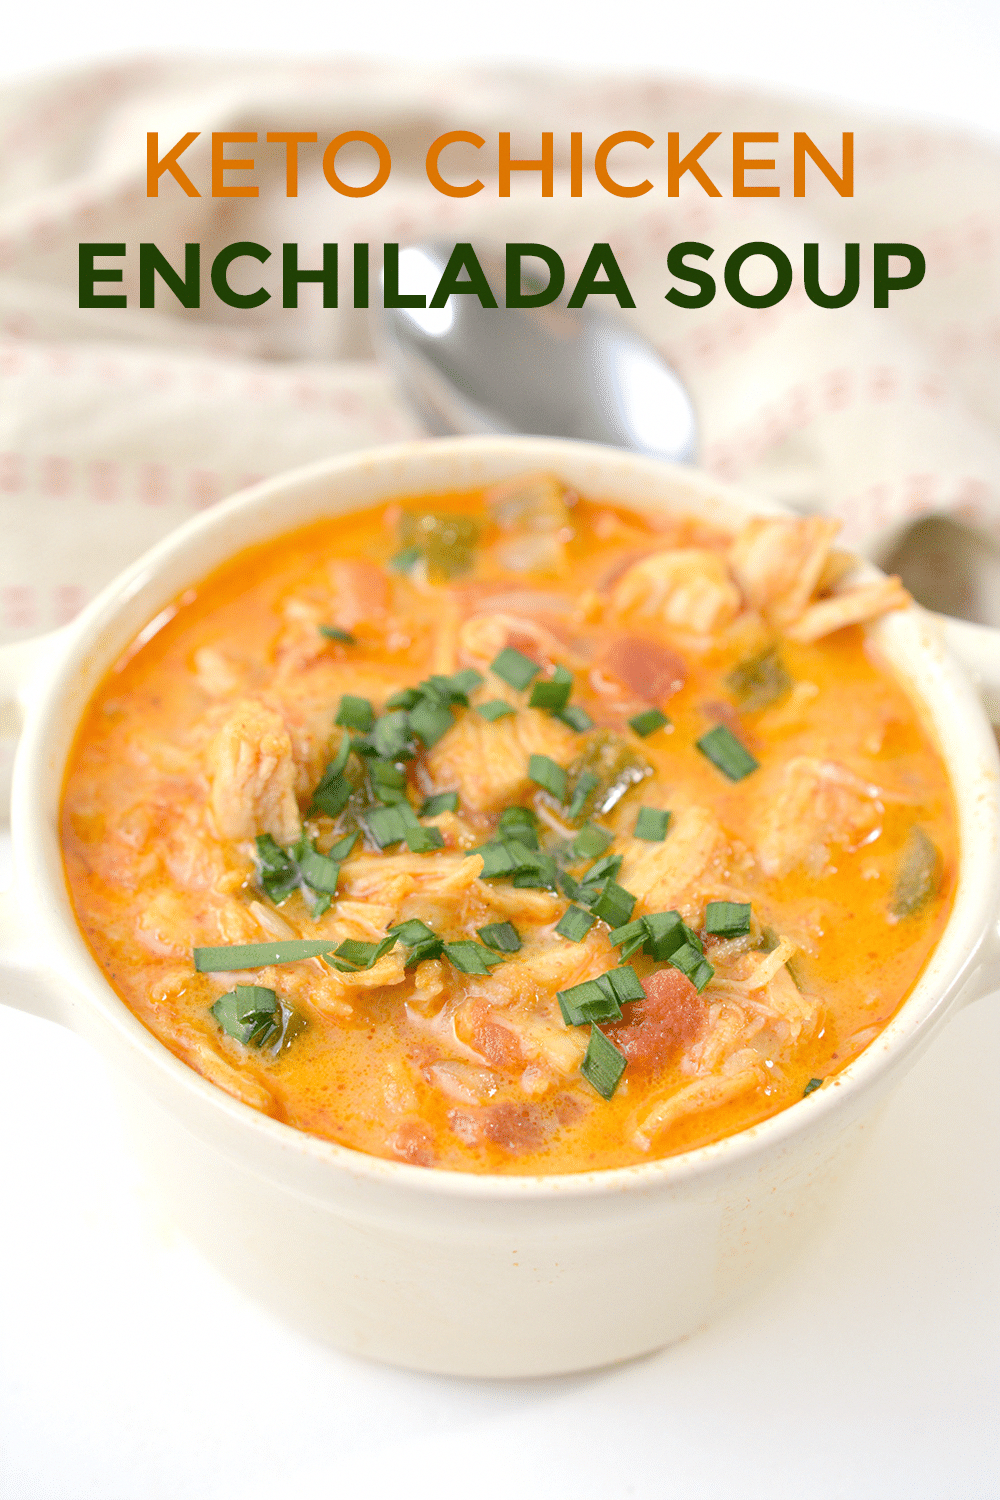 Looking for an easy and healthy keto chicken enchilada soup recipe? Look no further because I have the PERFECT low carb recipe! It's creamy, has plenty of cheese, and is even made on the stovetop in under 30 minutes. It will be a crowd pleaser for the whole family - including the picky kids.